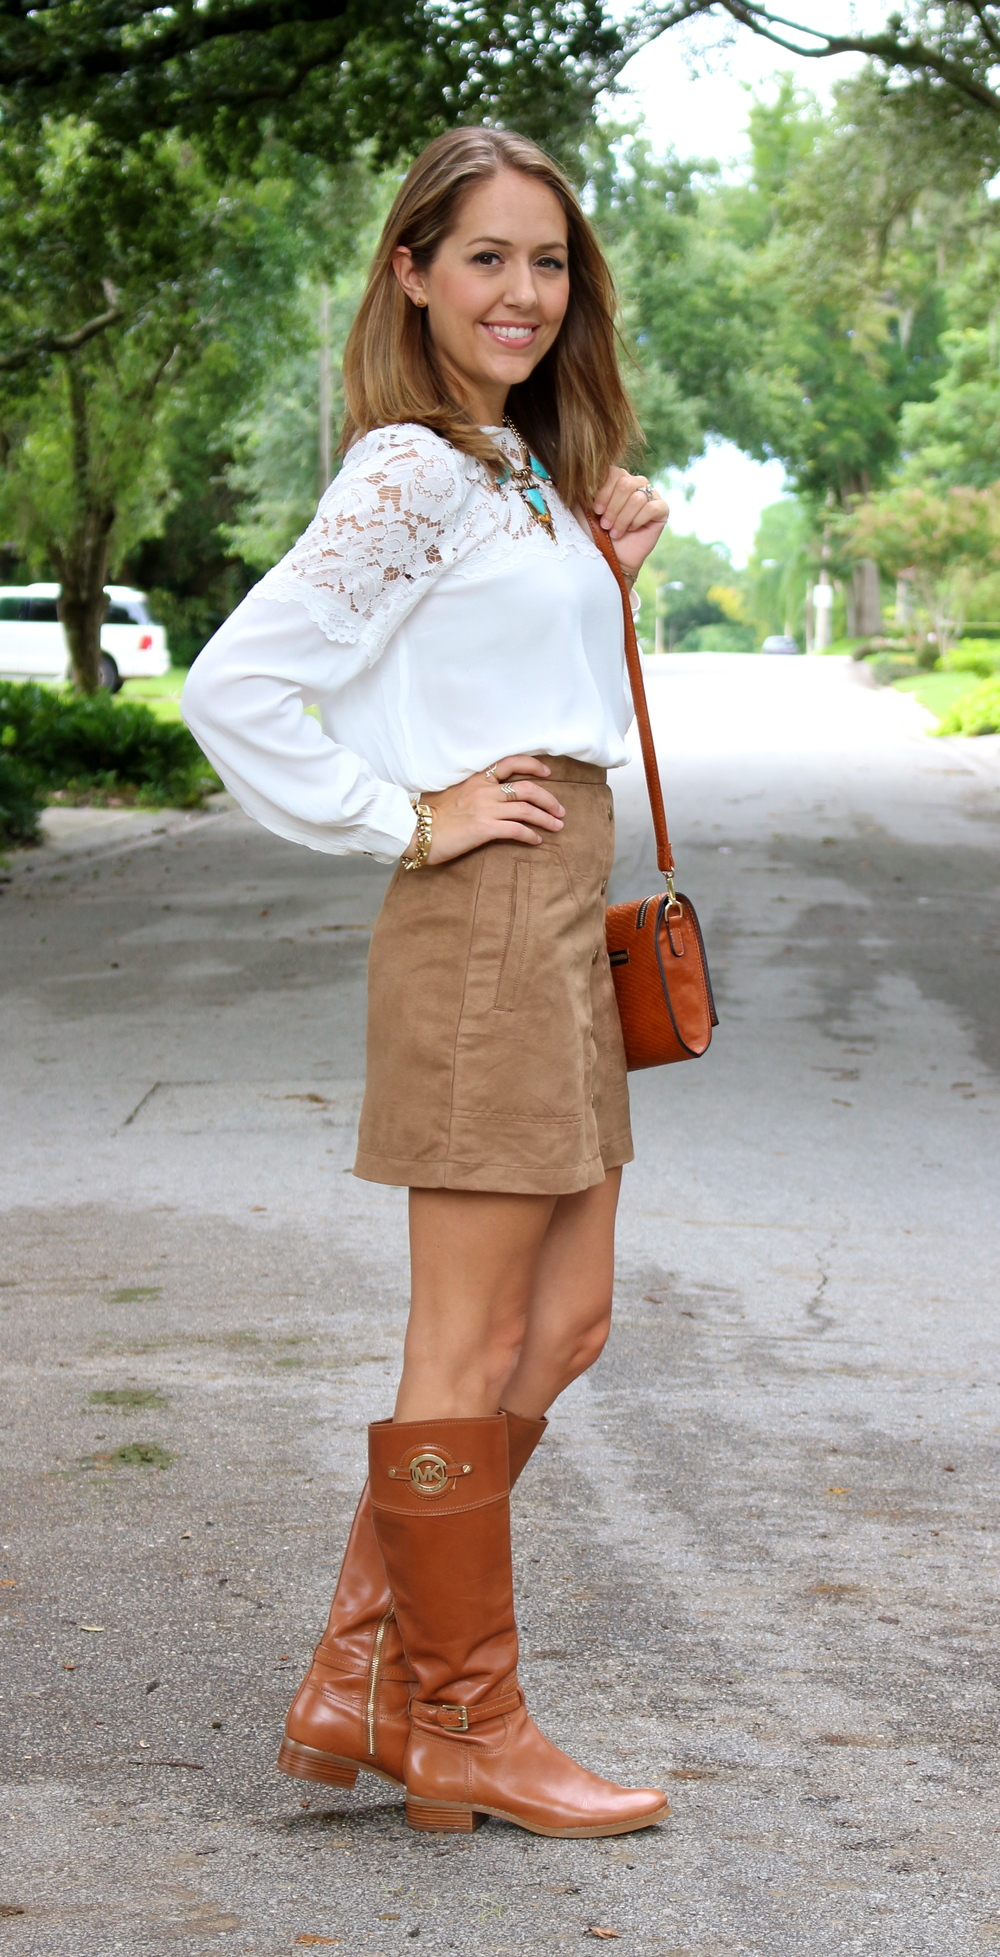 Lace top, suede skirt, riding boots